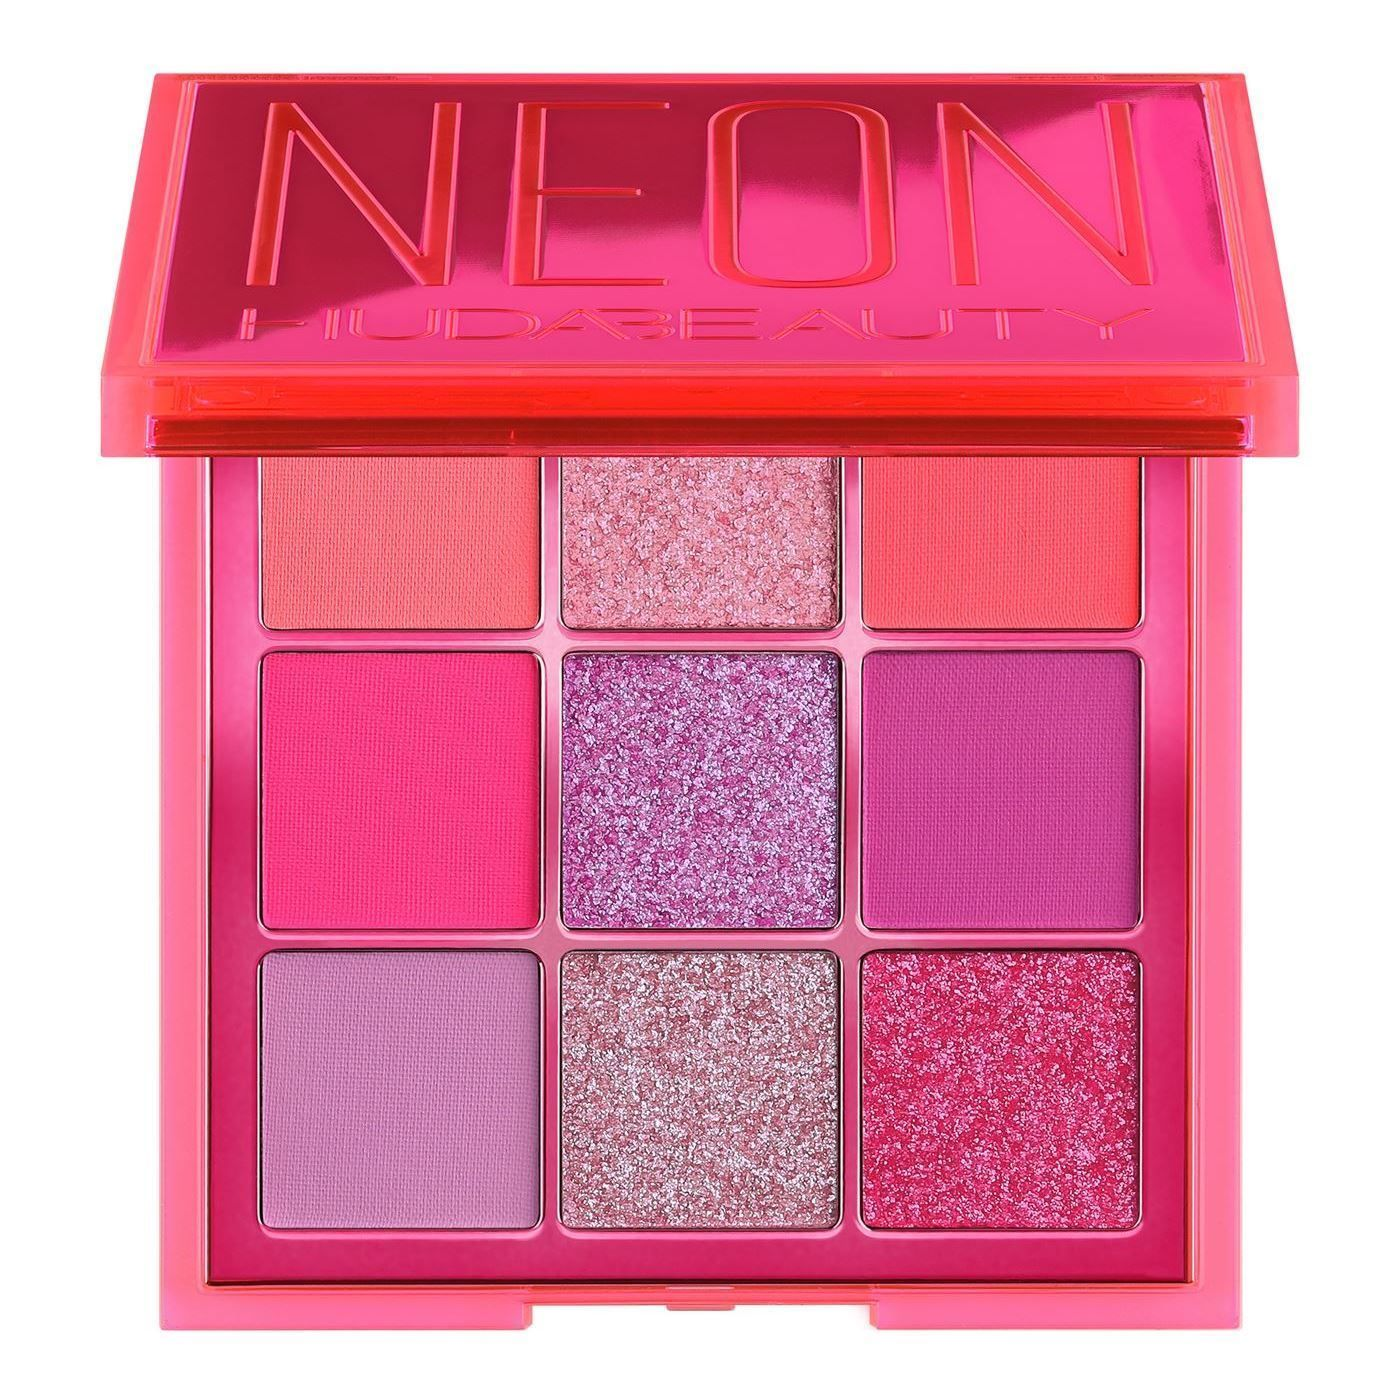 Neon Obsessions Eyeshadow Palette - Neon Pink